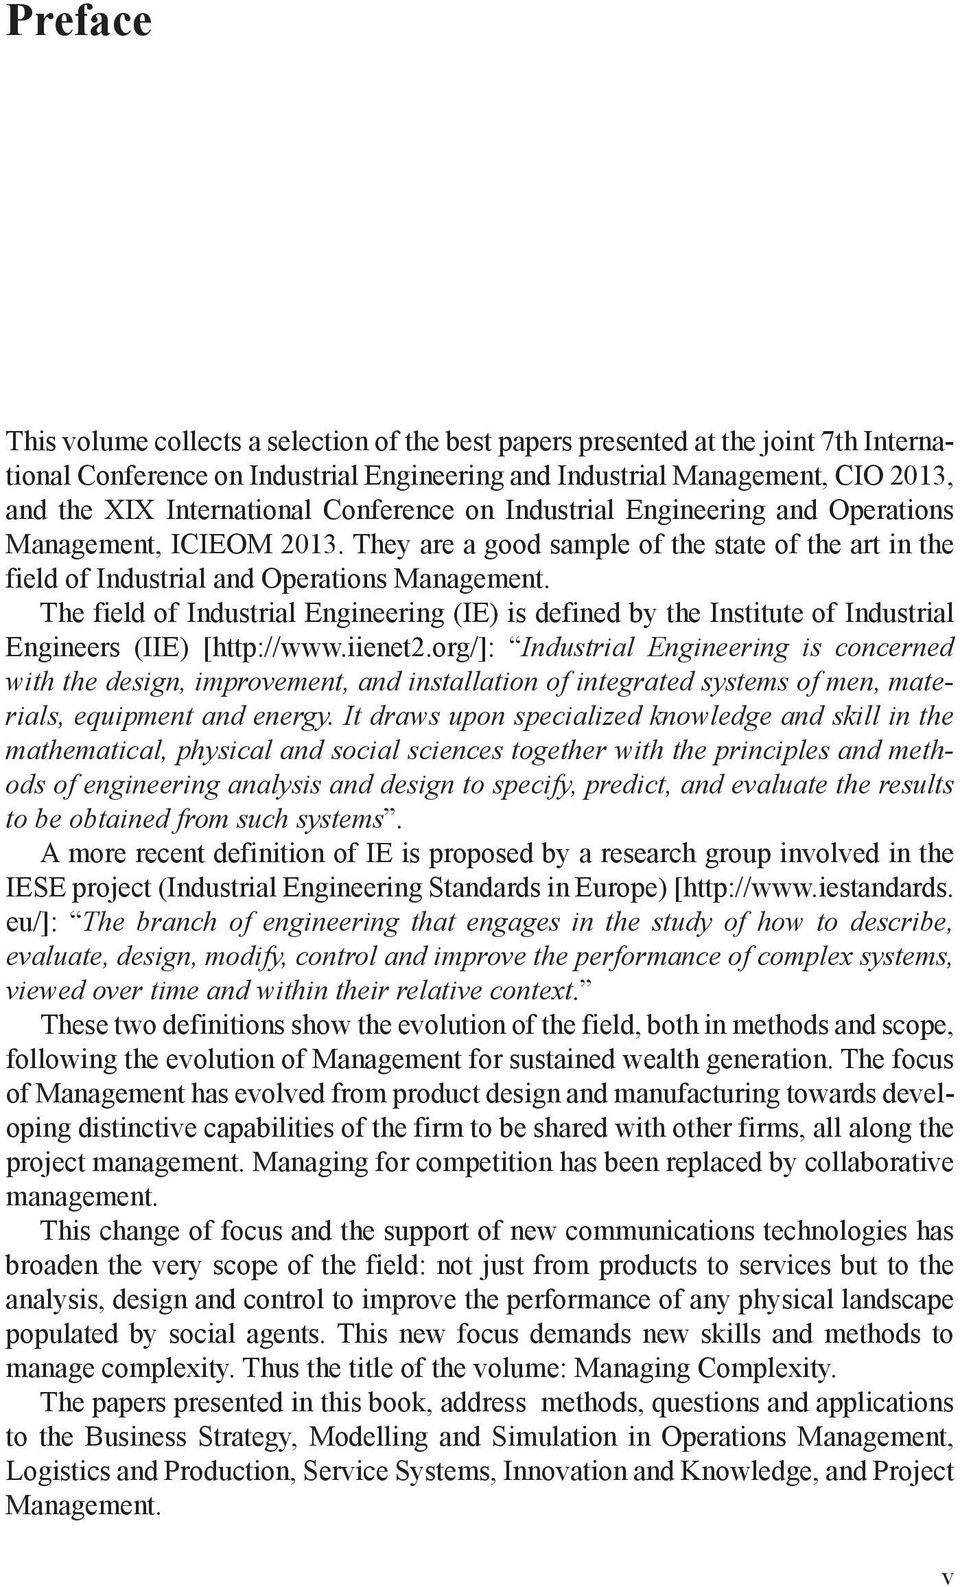 The field of Industrial Engineering (IE) is defined by the Institute of Industrial Engineers (IIE) [http://www.iienet2.